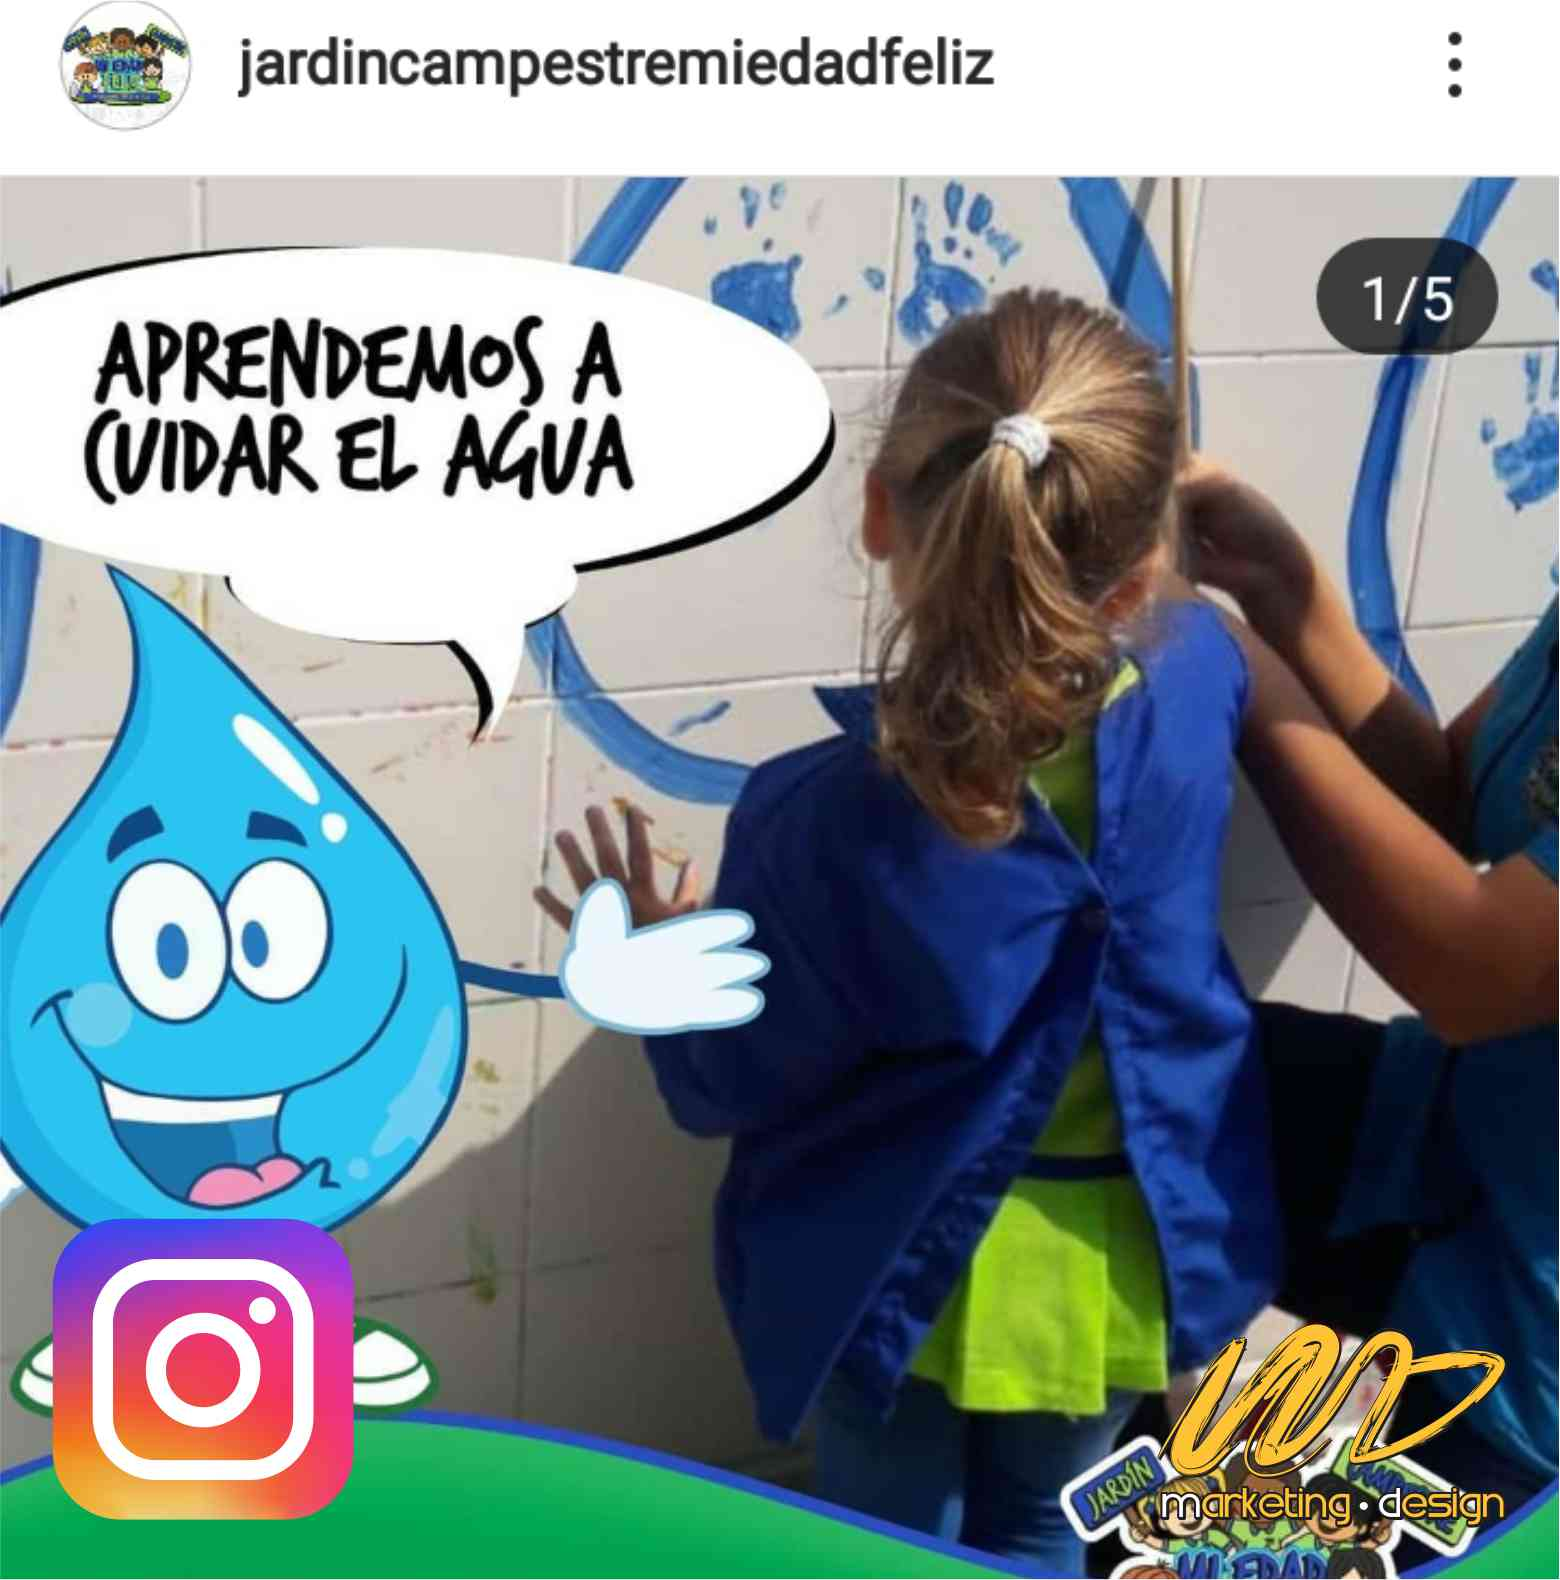 Clientes Instagram Marketing Design 1907